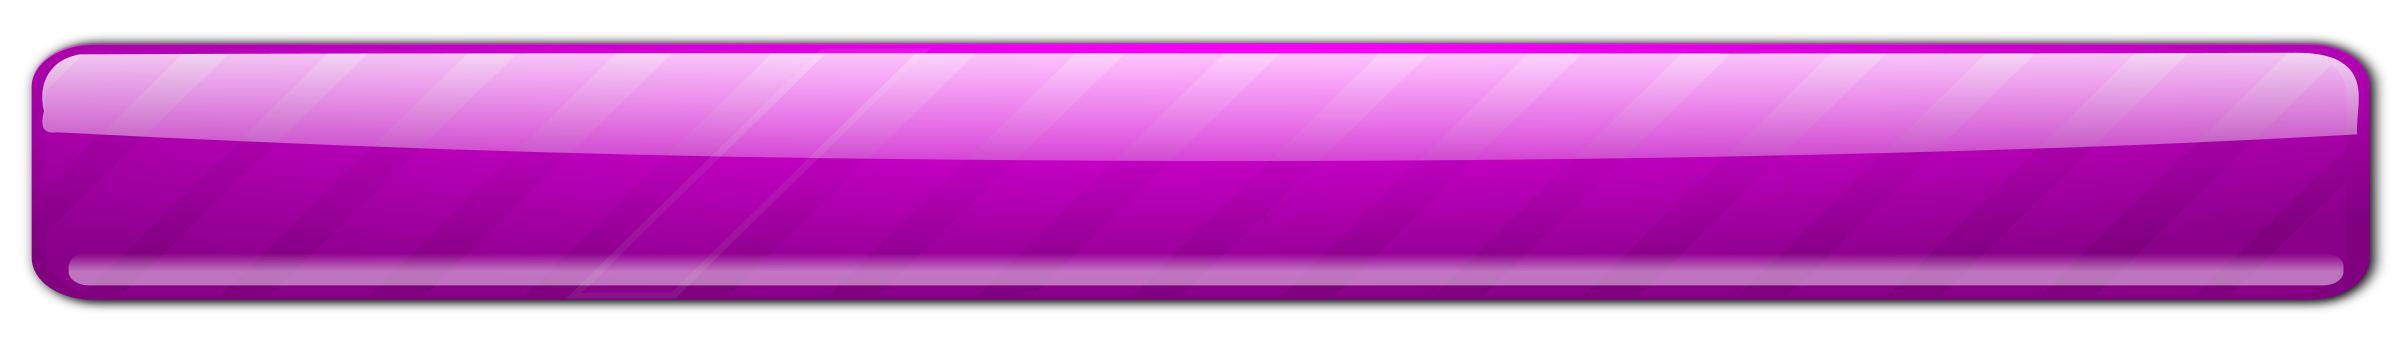 transparent bars striped